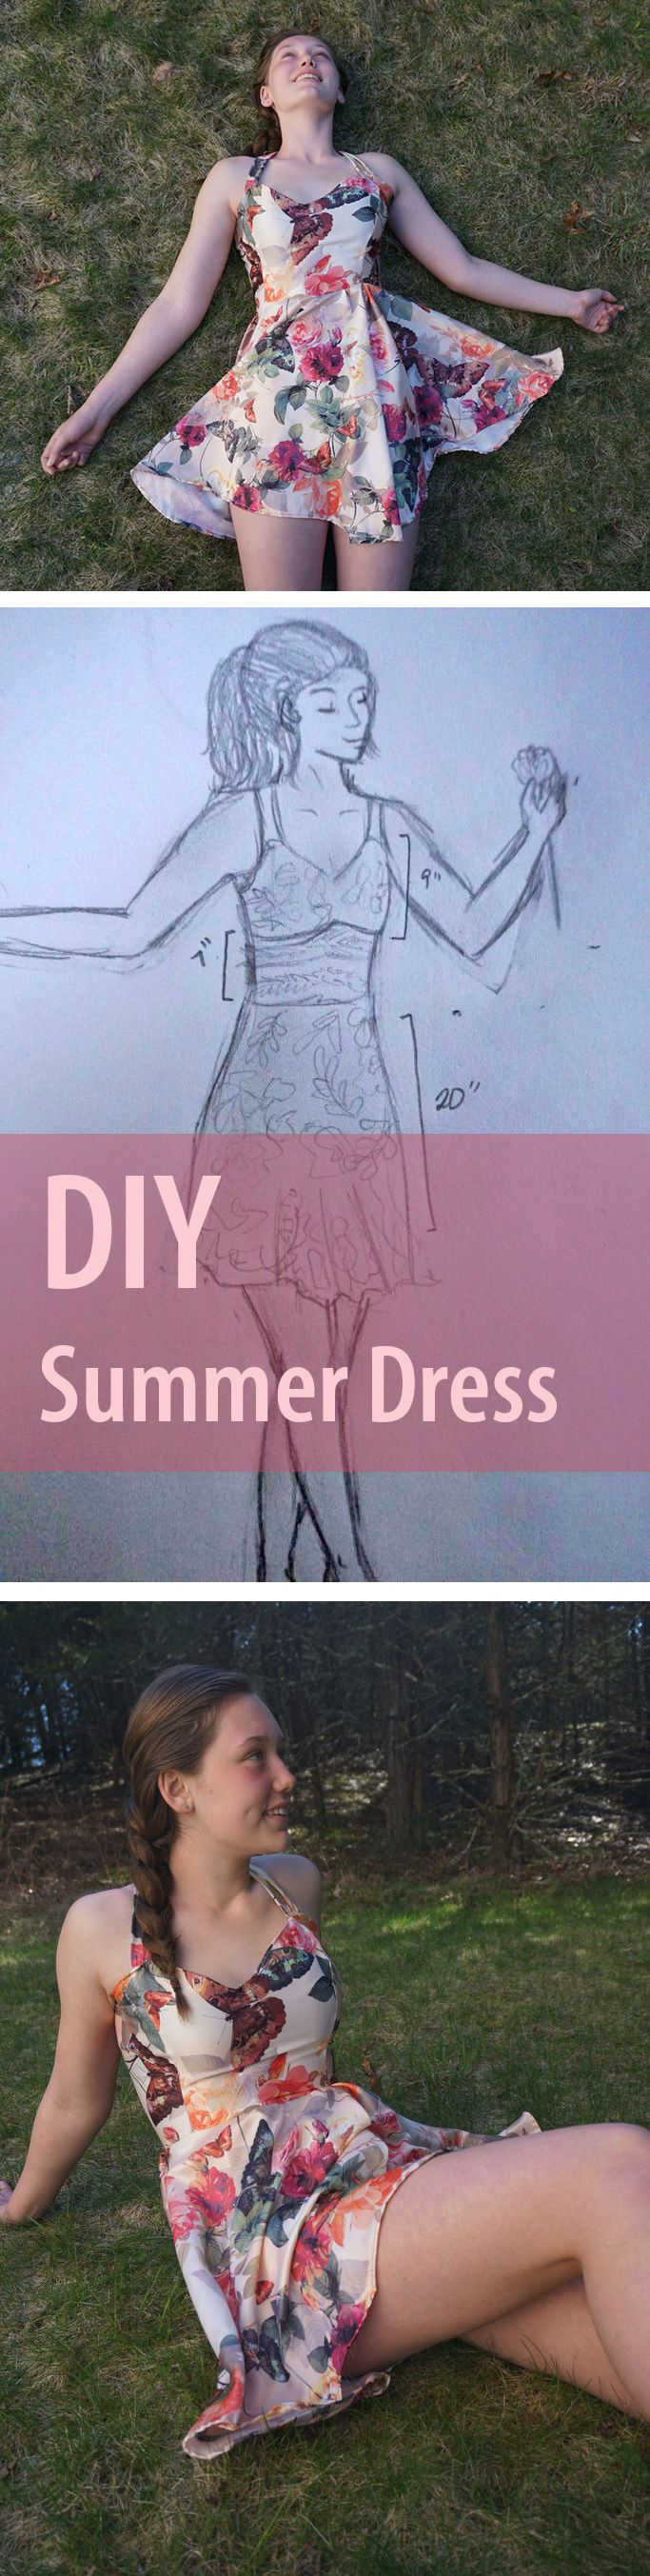 Step 1: Make yourself a gorgeous silk summer dress. Step 2: Have the most amazing summer ever.